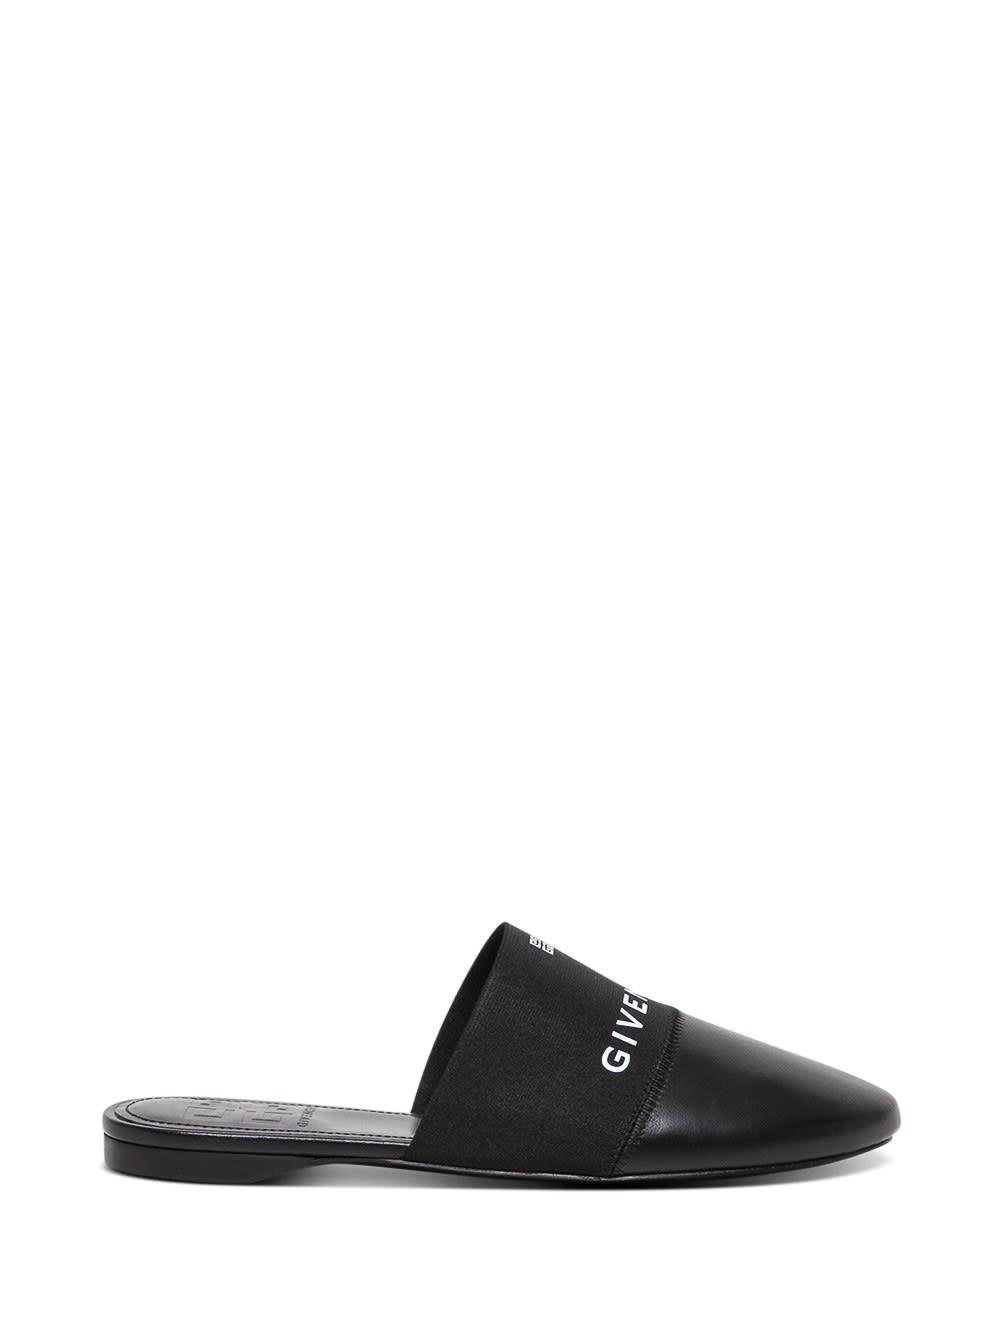 Givenchy 4g Flat Mules In Black Leather